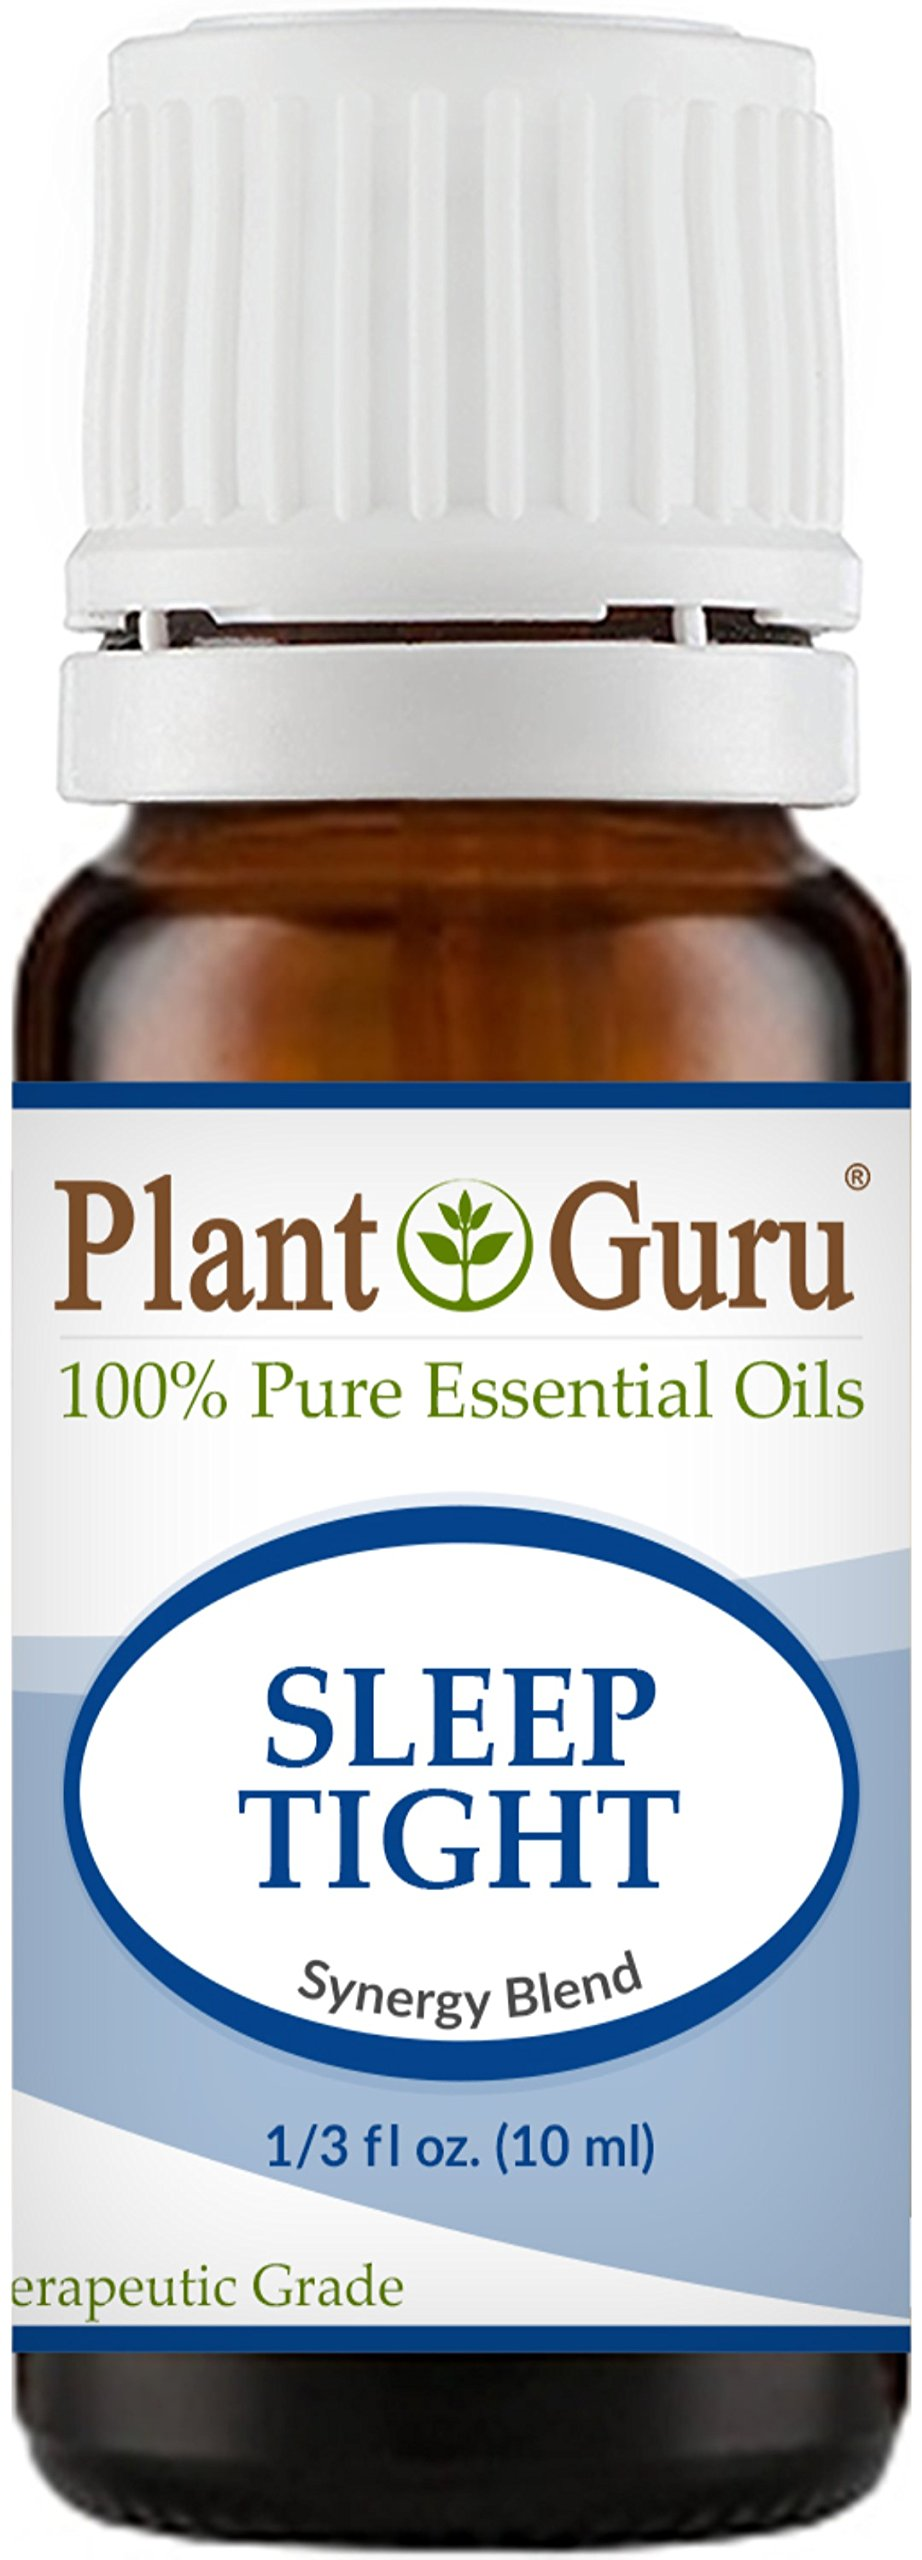 Sleep Tight Synergy Essential Oil Blend 10 ml. 100% Pure Undiluted Therapeutic Grade. Good Night Aid, Relaxation, Depression, Stress, Anxiety Relief, Mood, Uplifting, Calming, Aromatherapy